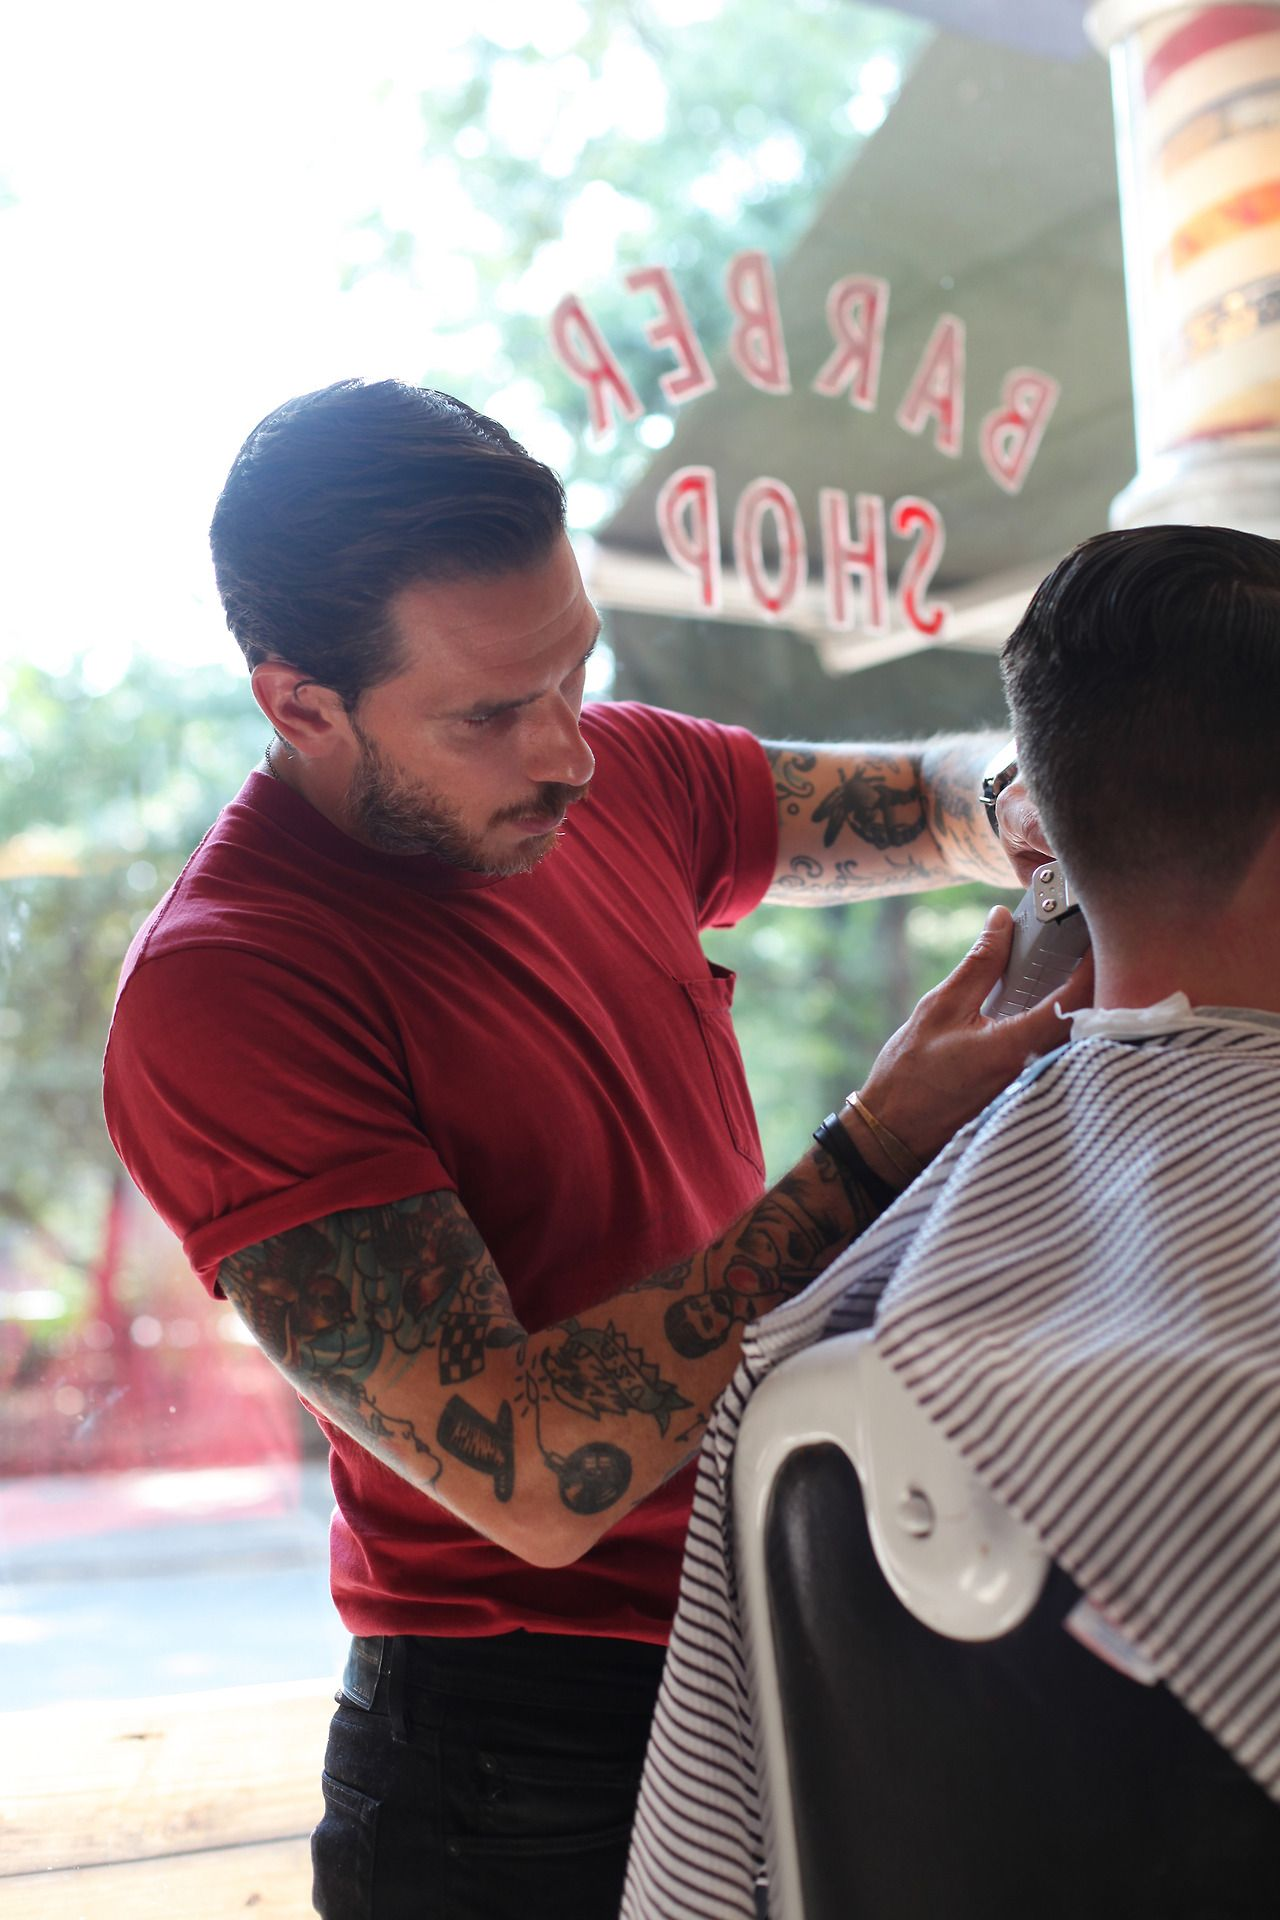 Tumblr mens haircuts ink tattoos  tattoos  pinterest  the oujays ink and photos